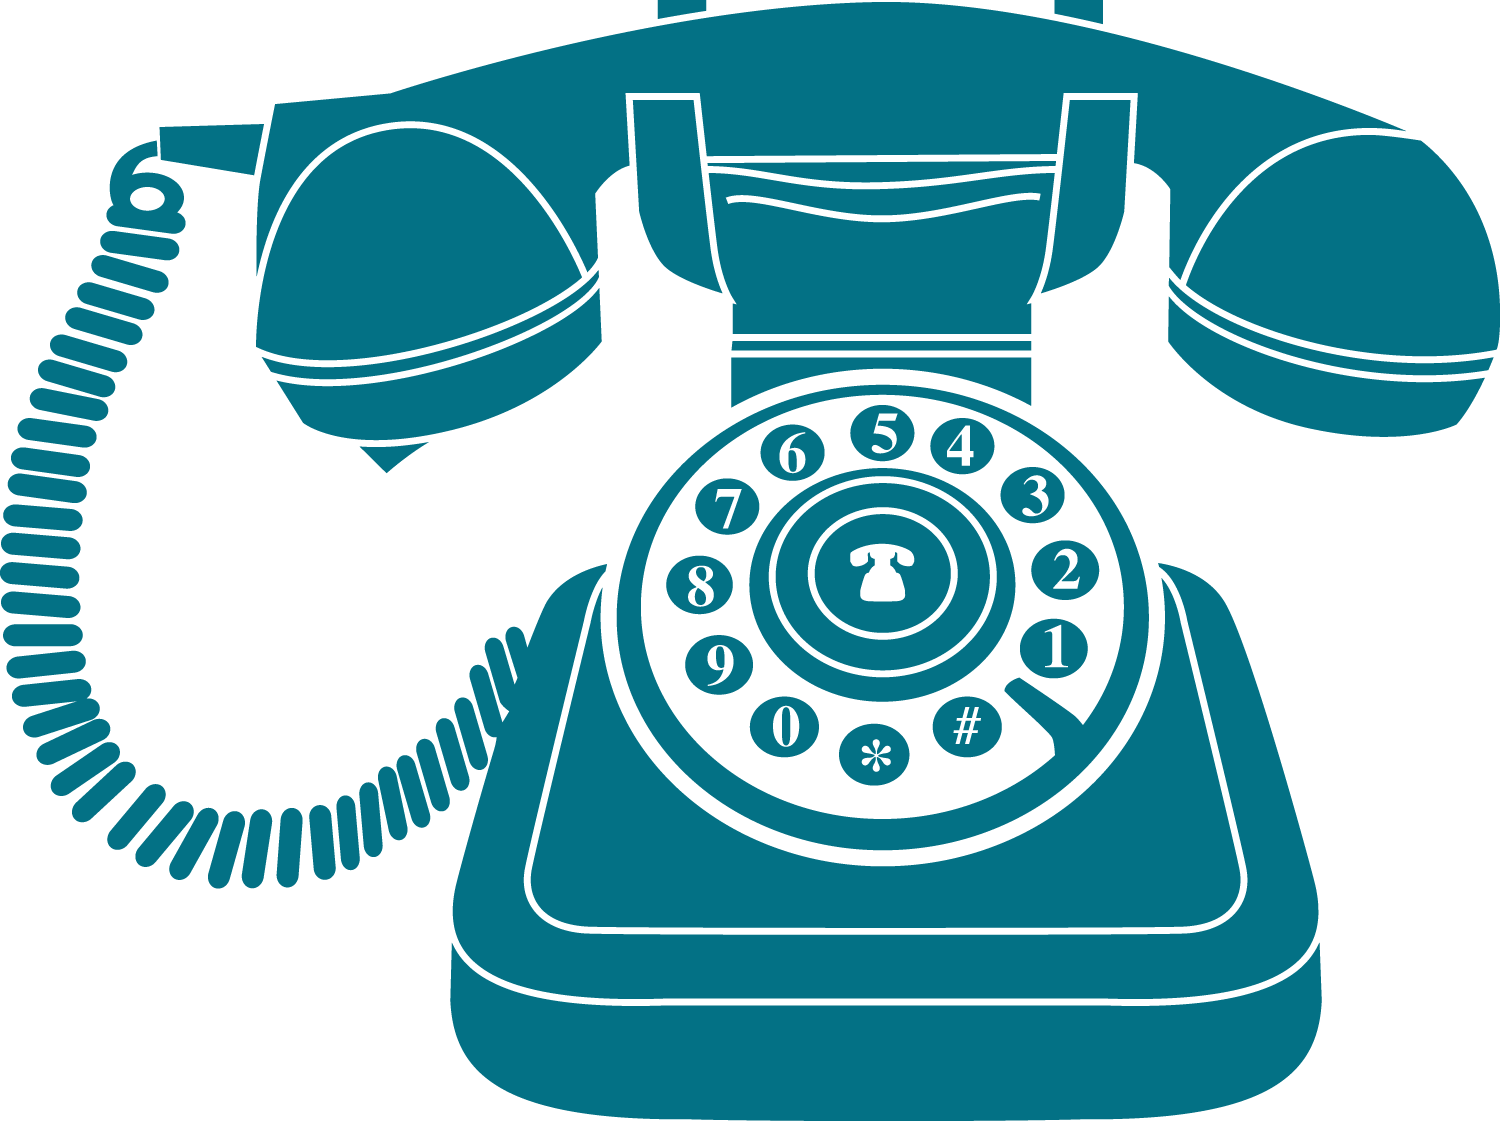 Telephone clipart blue png Phone PNGMart Free Images Transparent